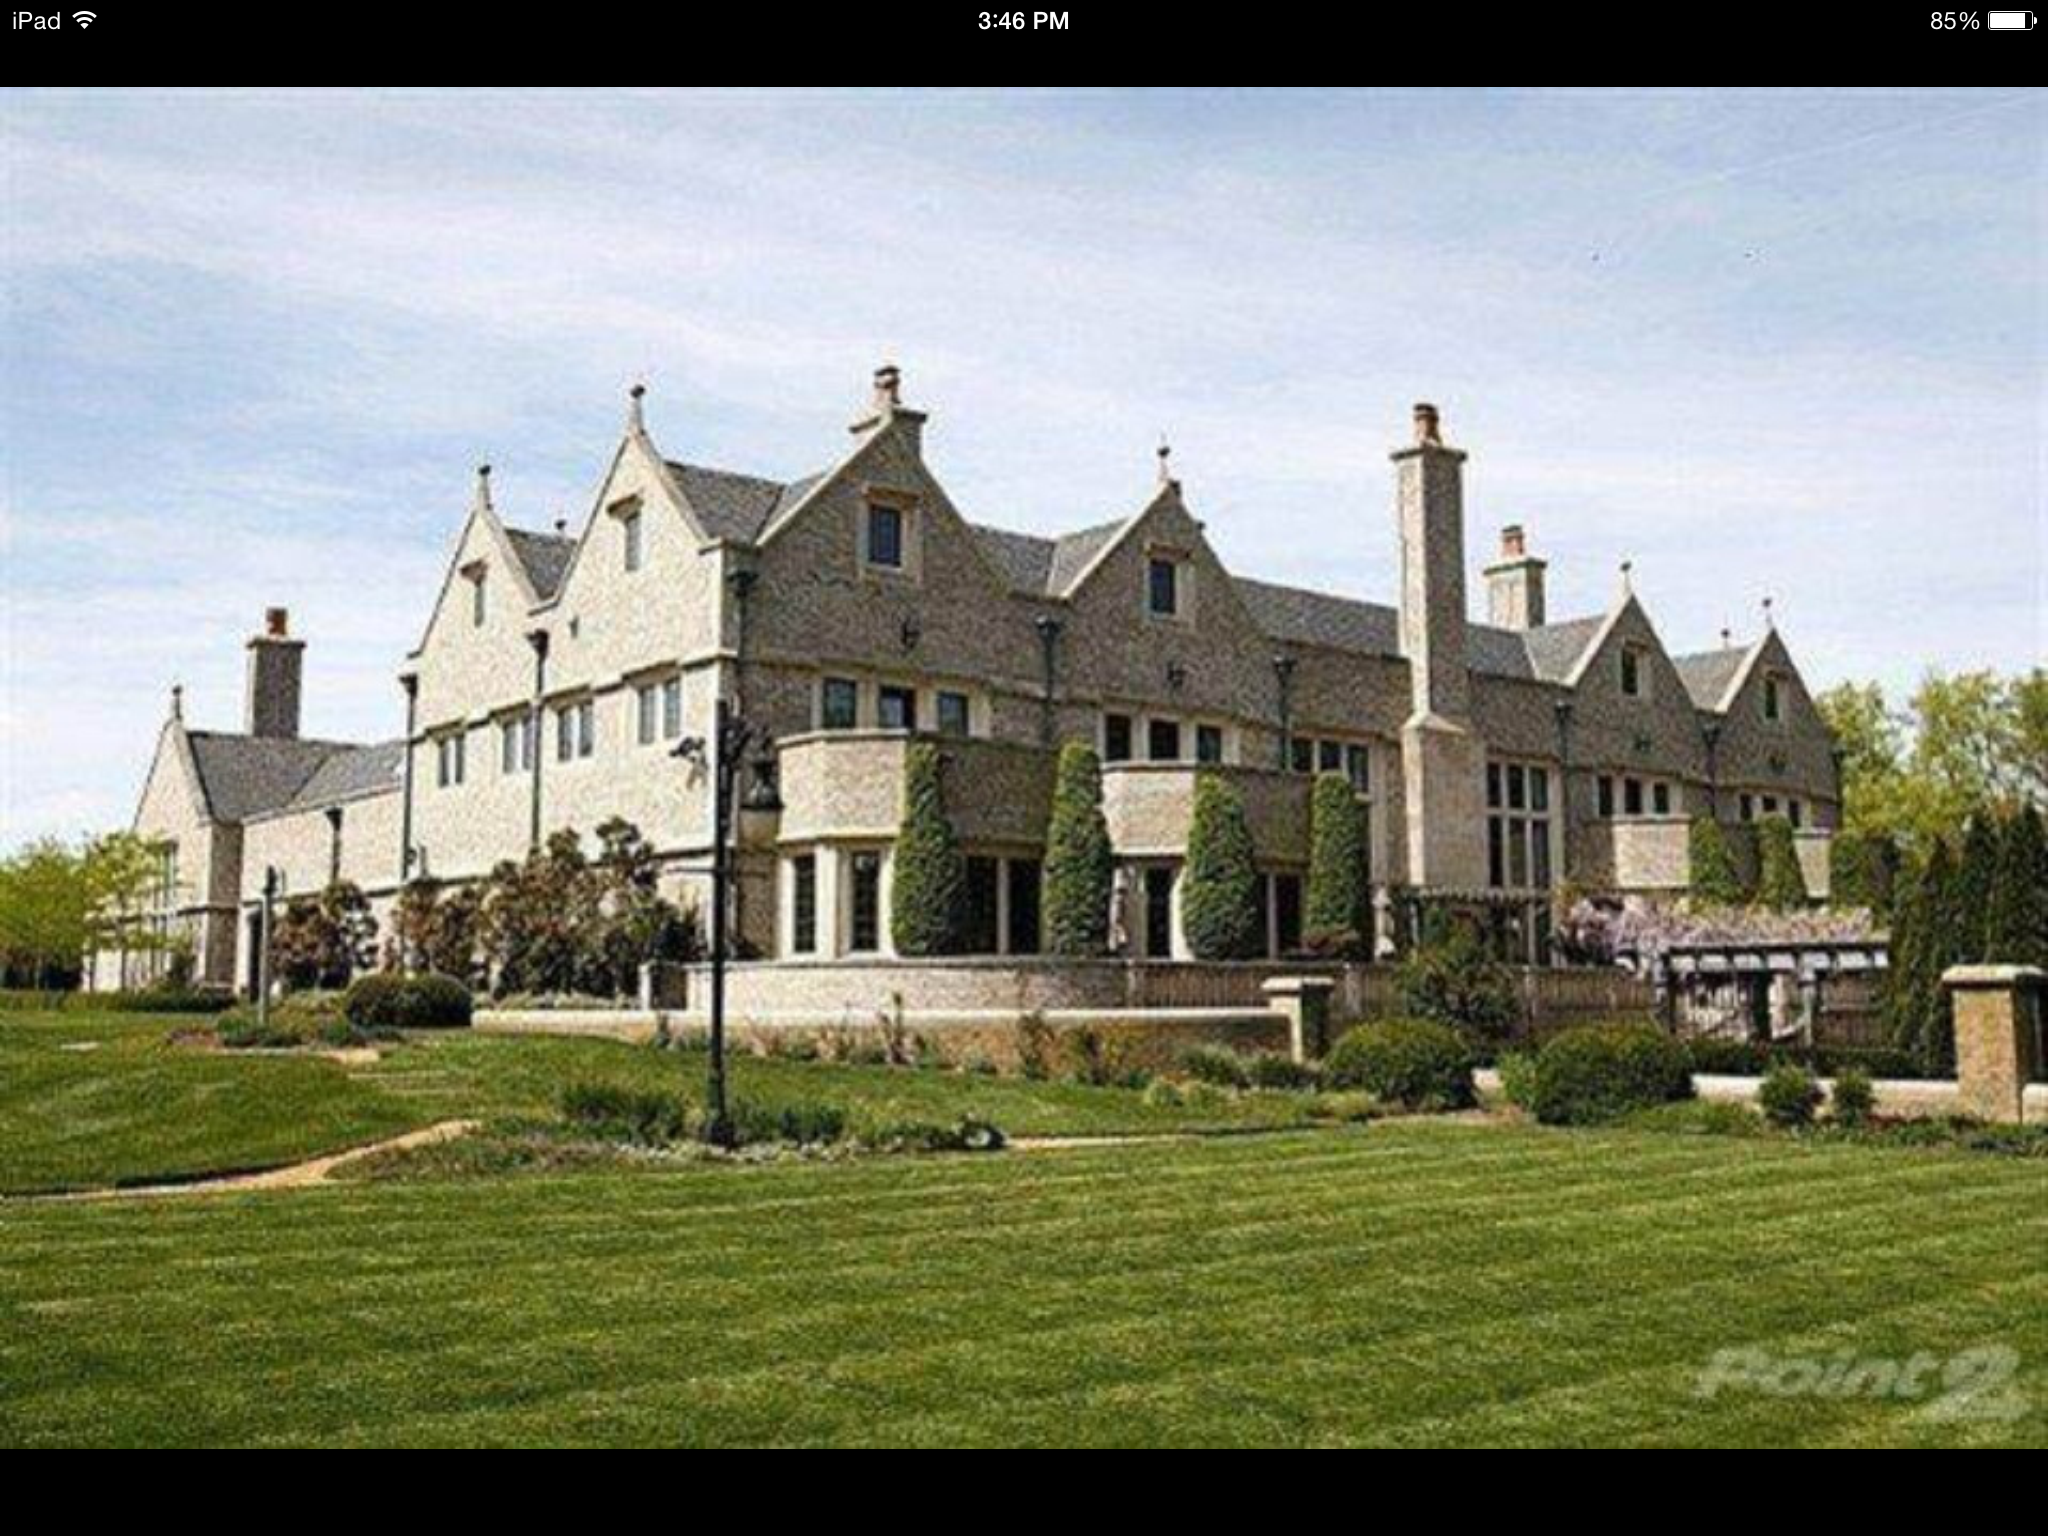 Daily dream home your private castle hotel in versailles kentucky - Mansion Dream House The Largest Mansion In Lexington Kentucky Million Dollar Rooms Mansion Pinterest House French Style And Spaces